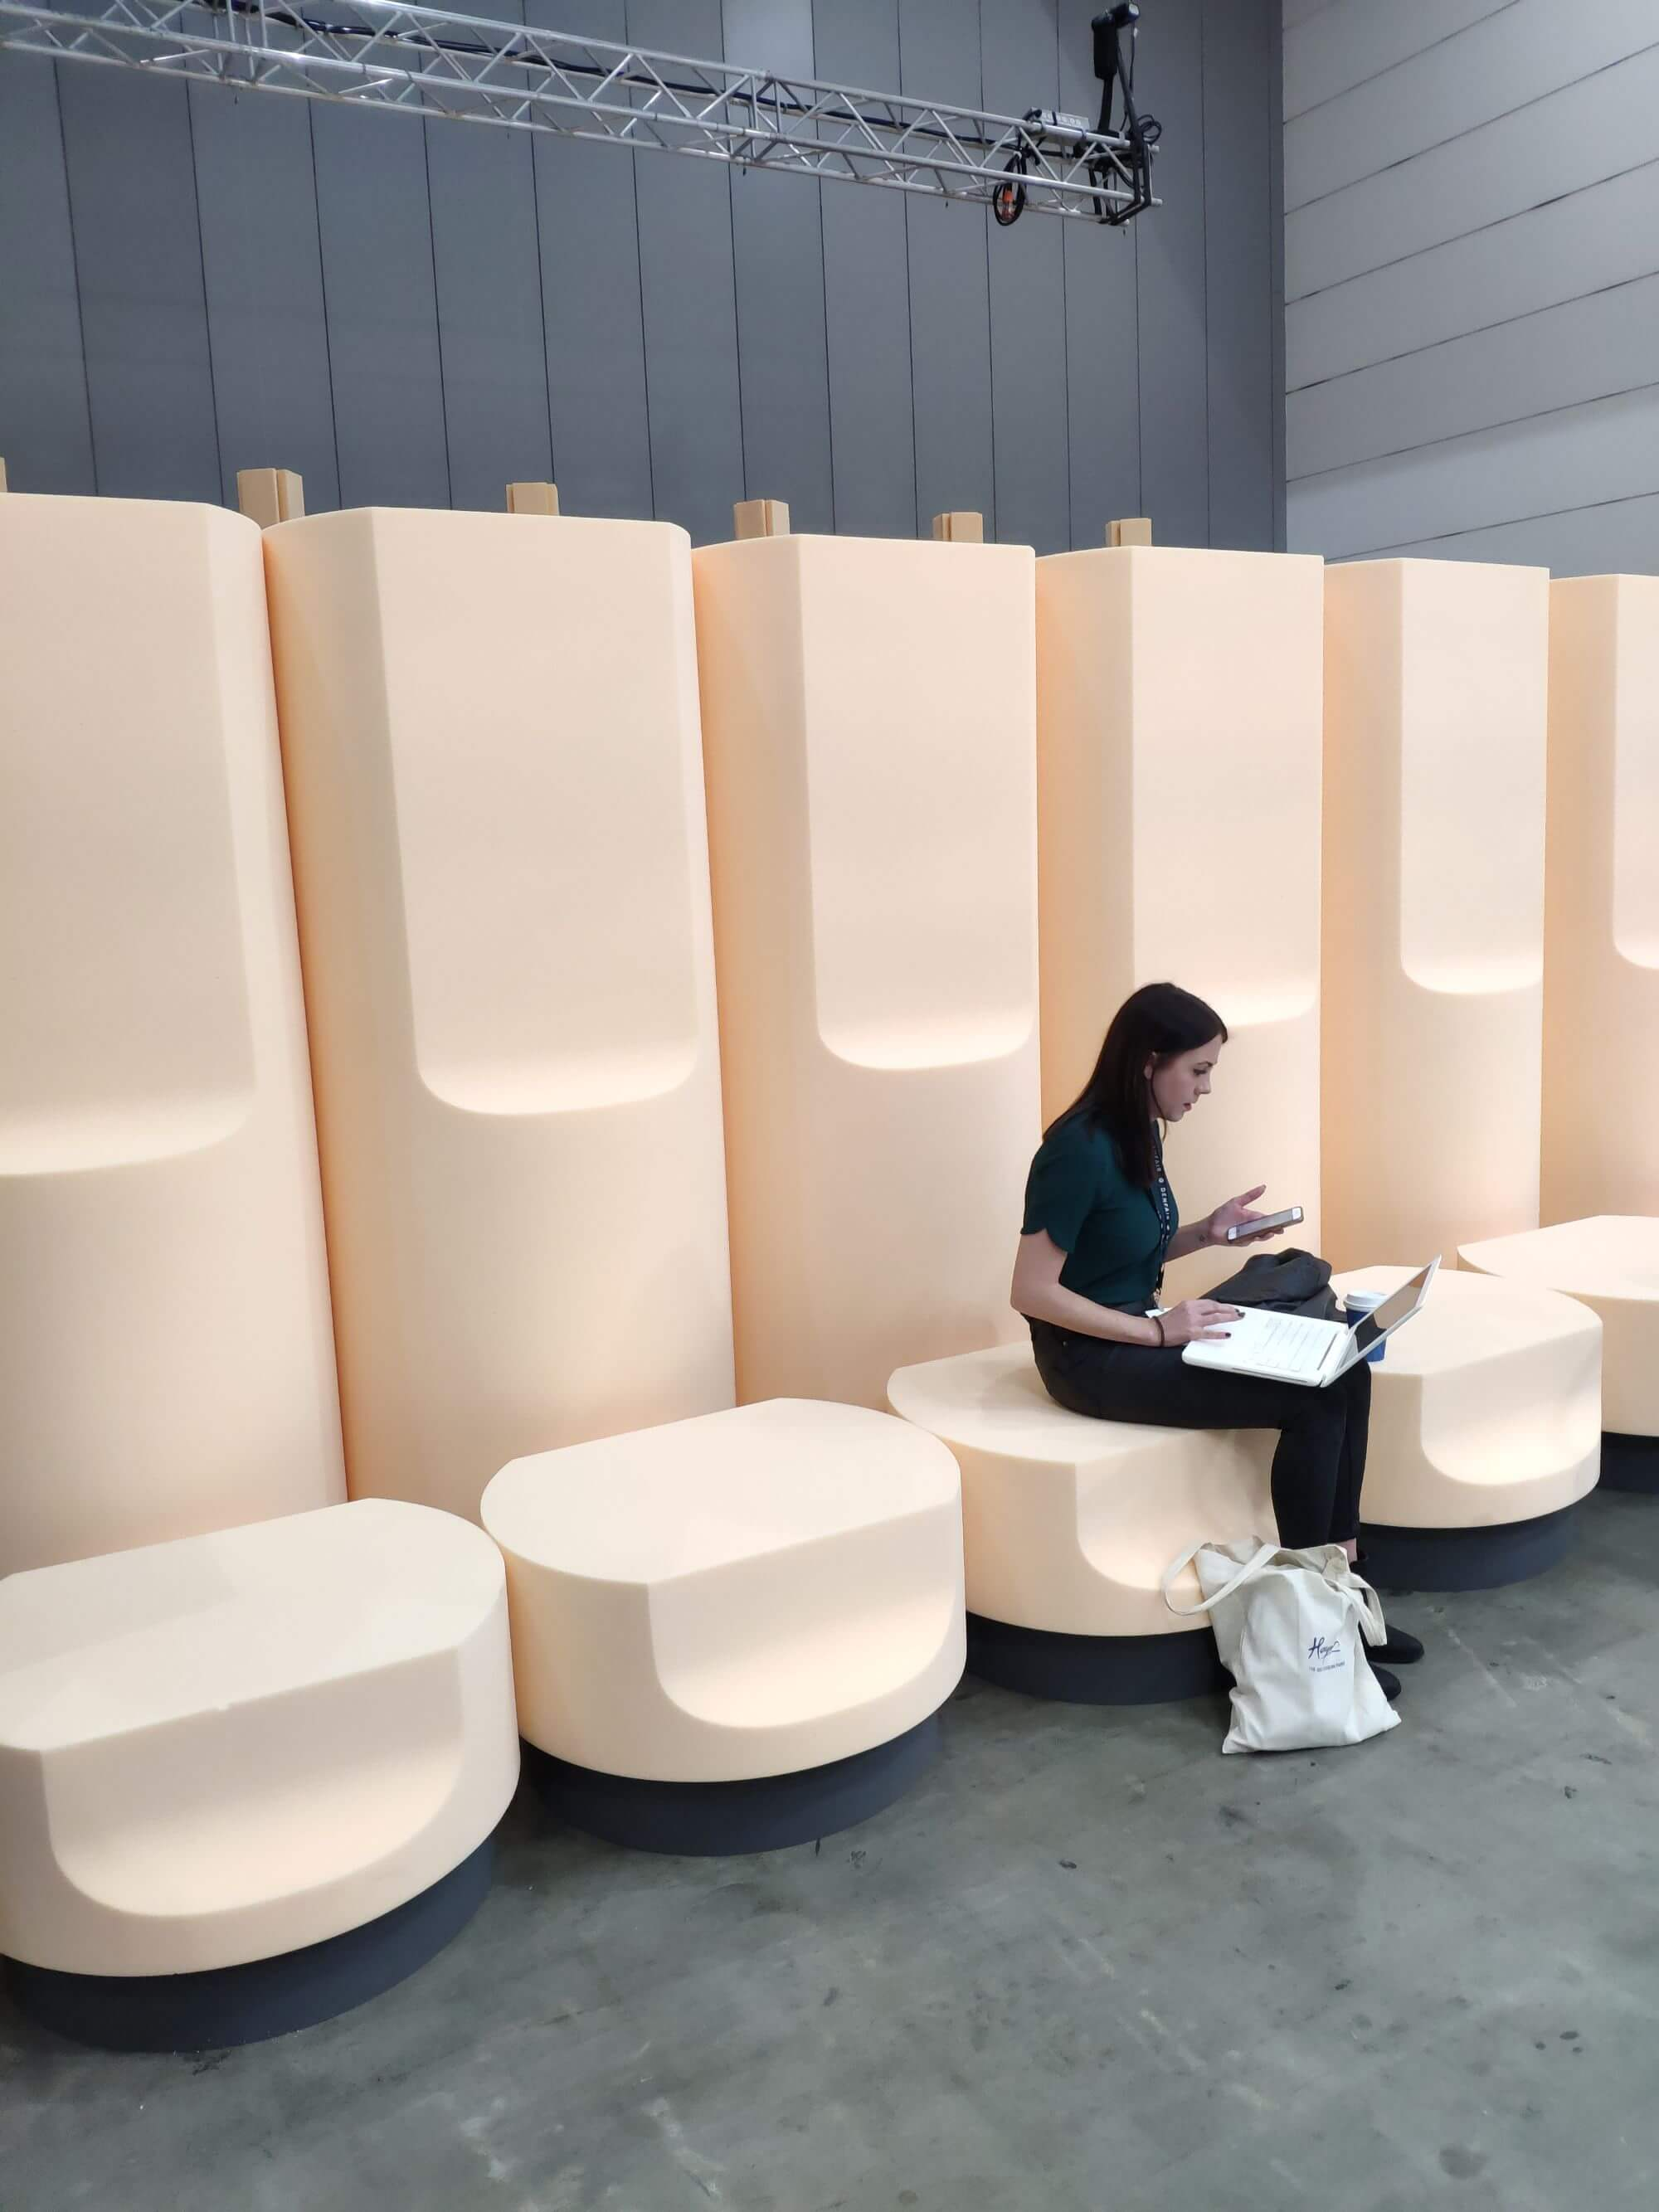 Creative modular seating with pastel coloured foam for the speaker series at DenFair